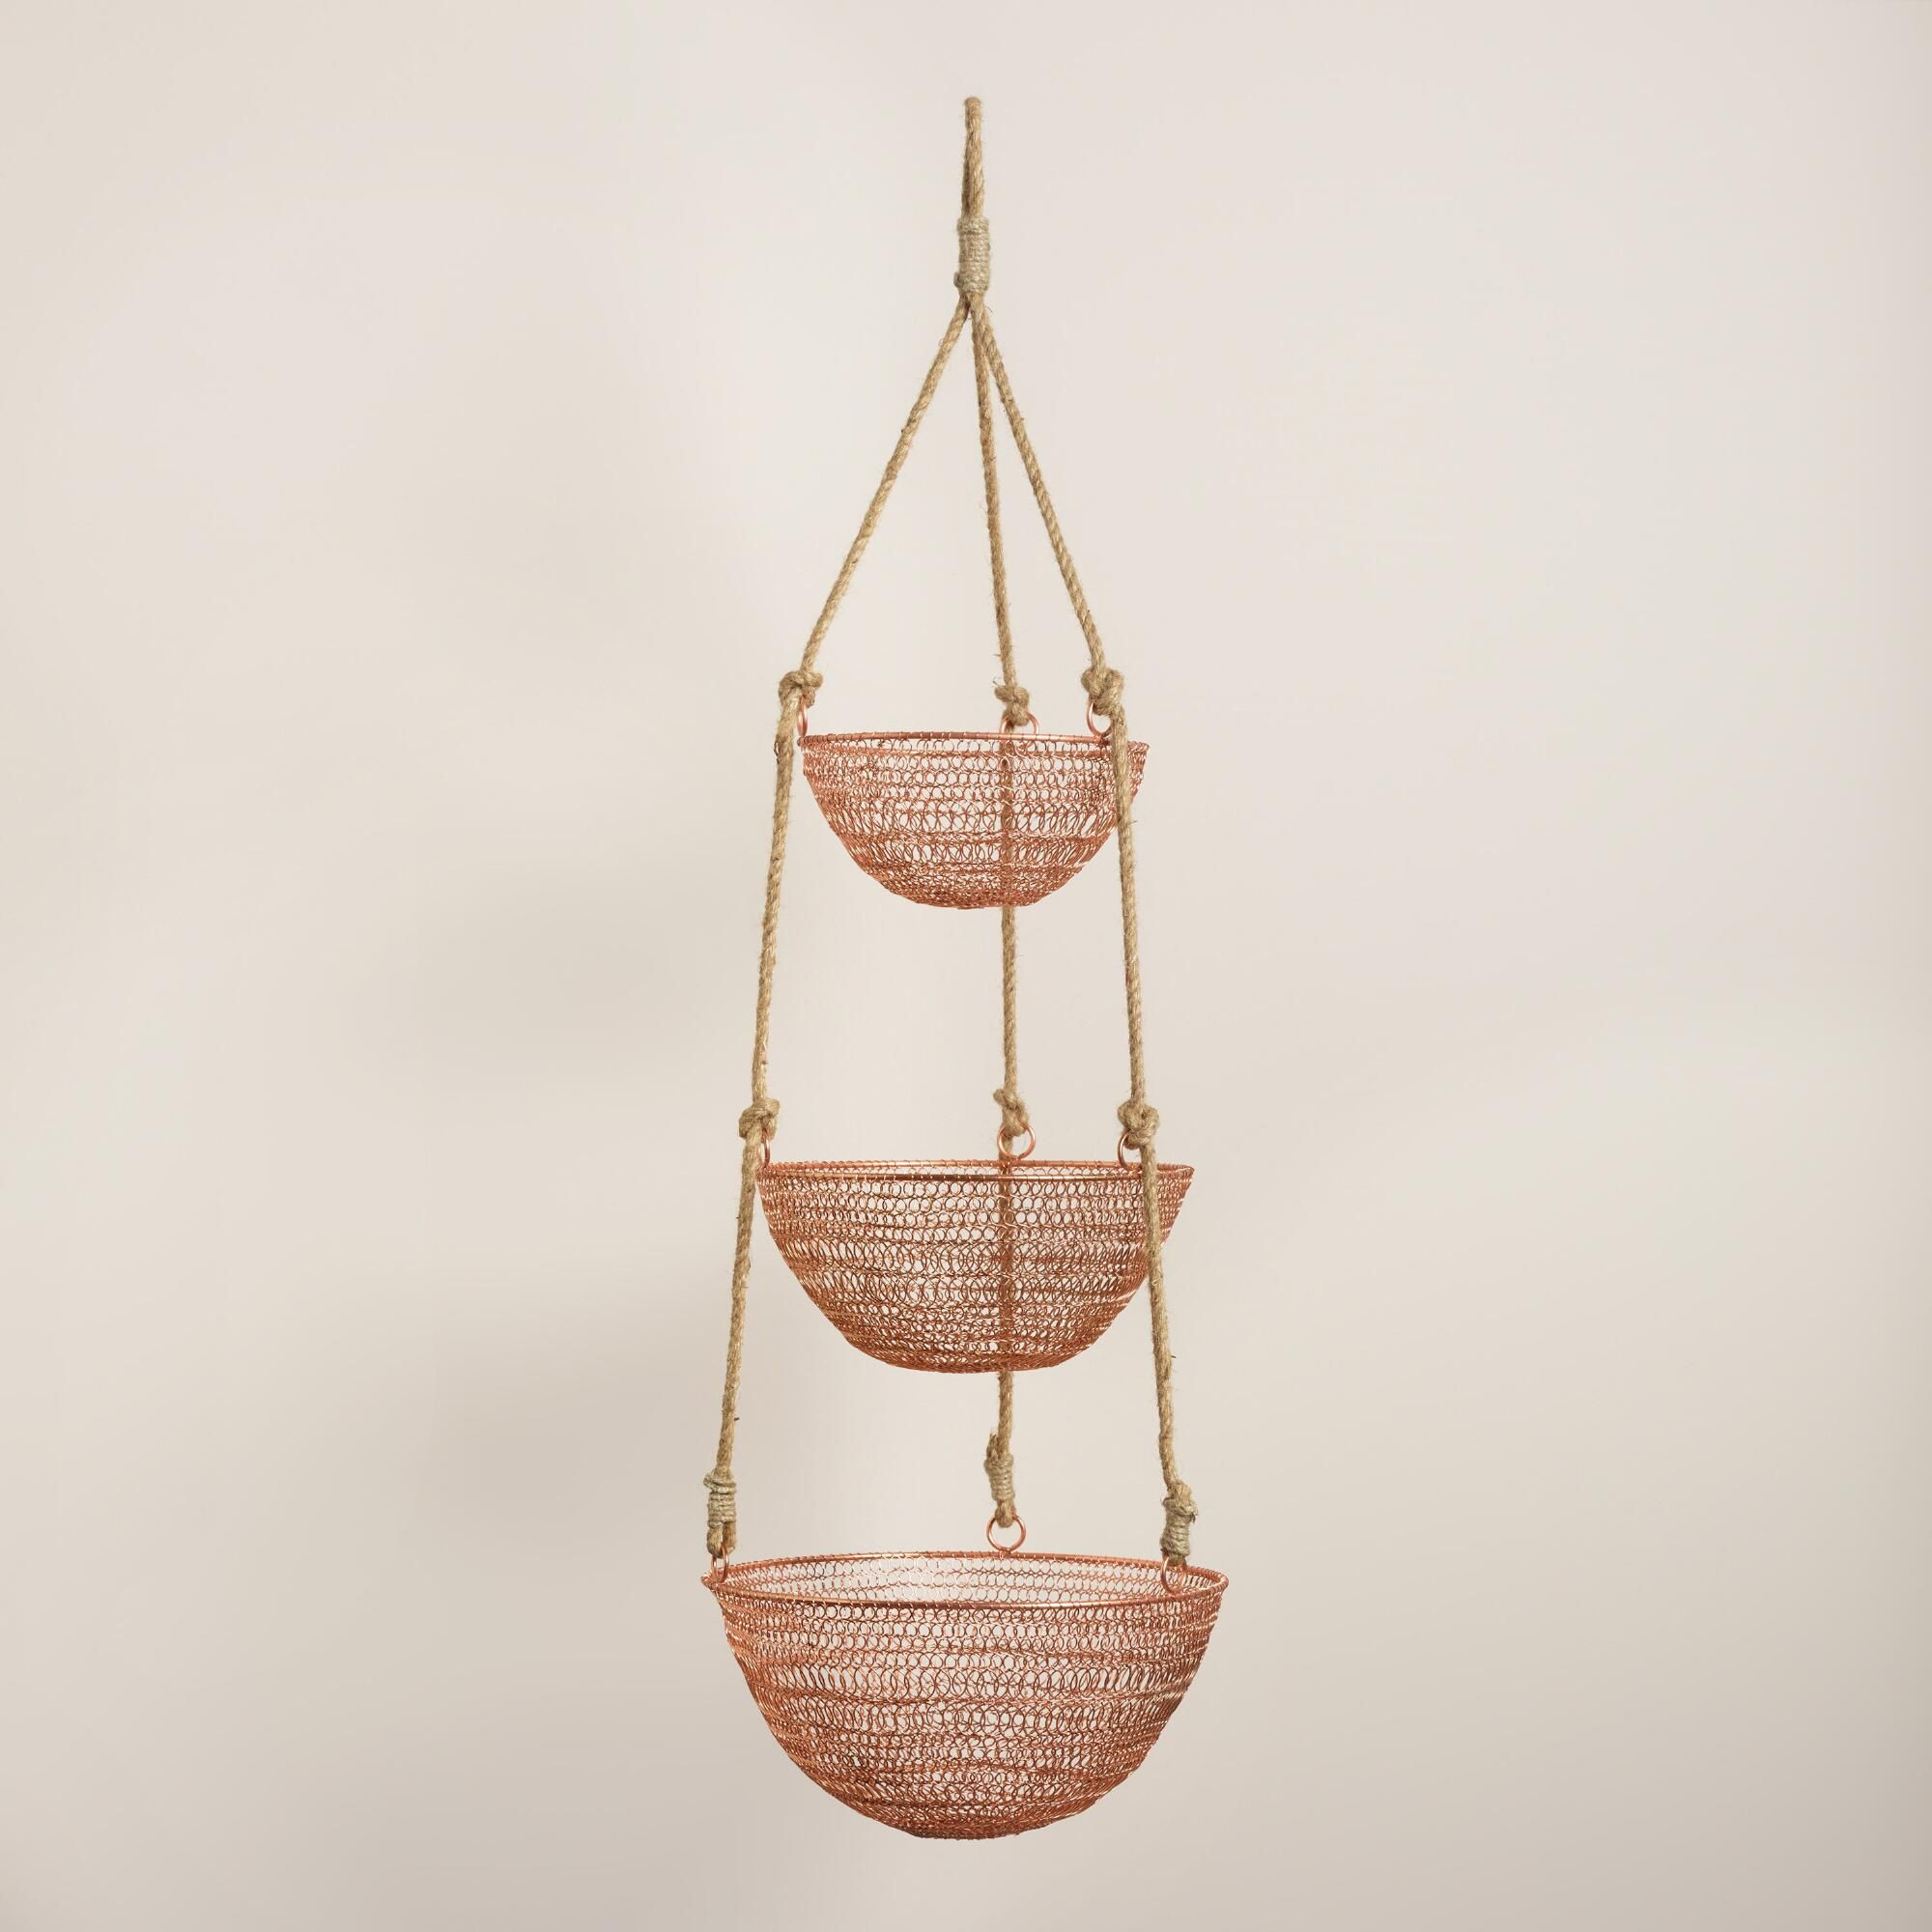 Delightful Copper And Rope 3 Tier Hanging Basket